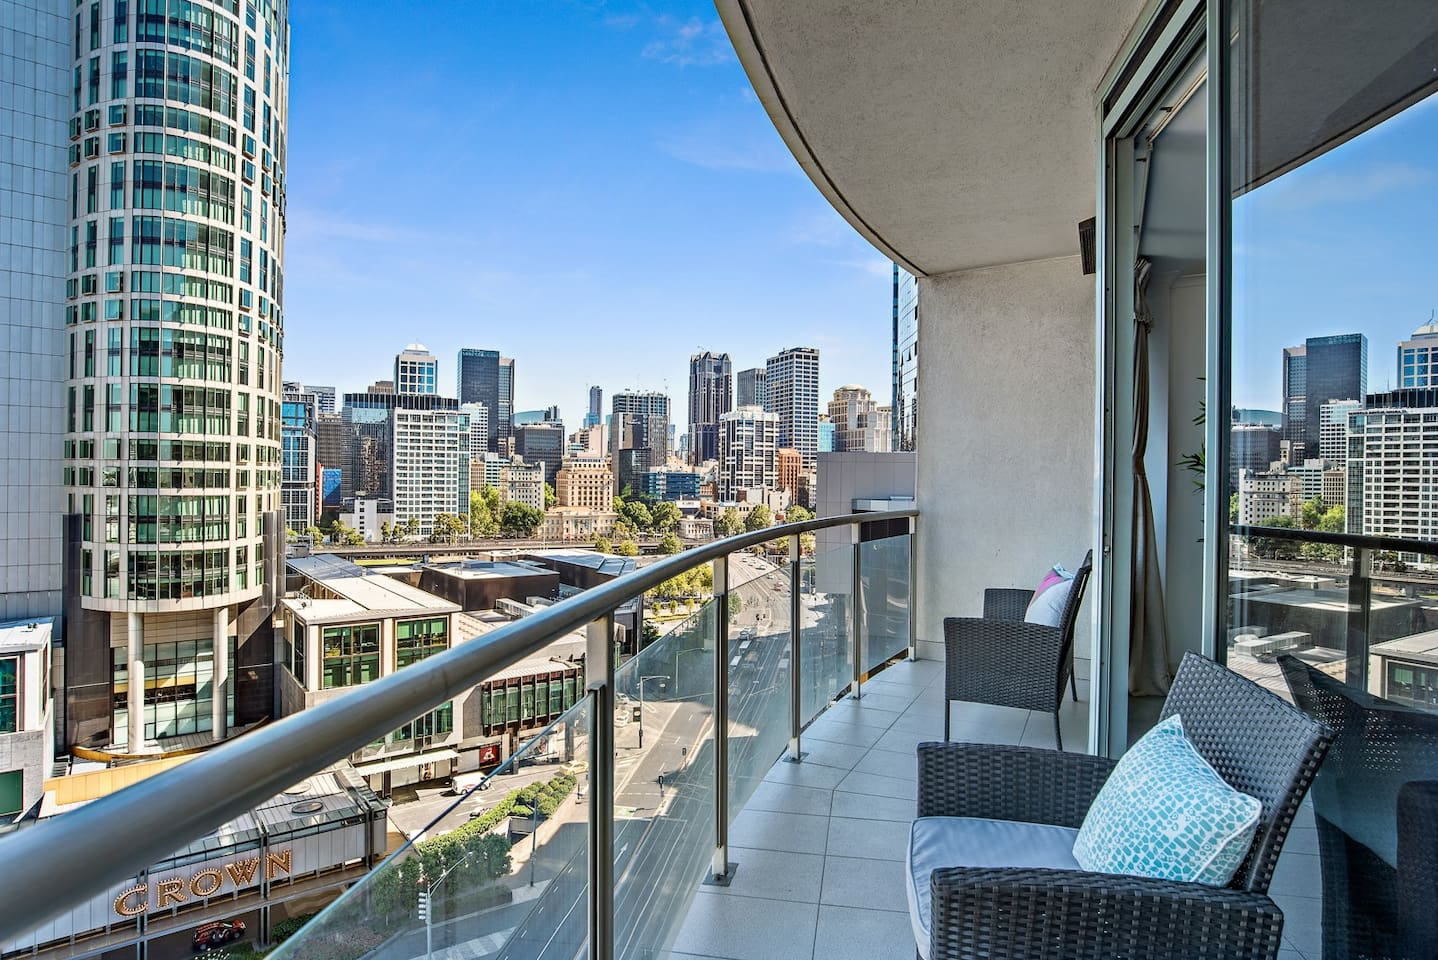 Enjoy a cool refreshing drink on the balcony after a busy day in Melbourne.